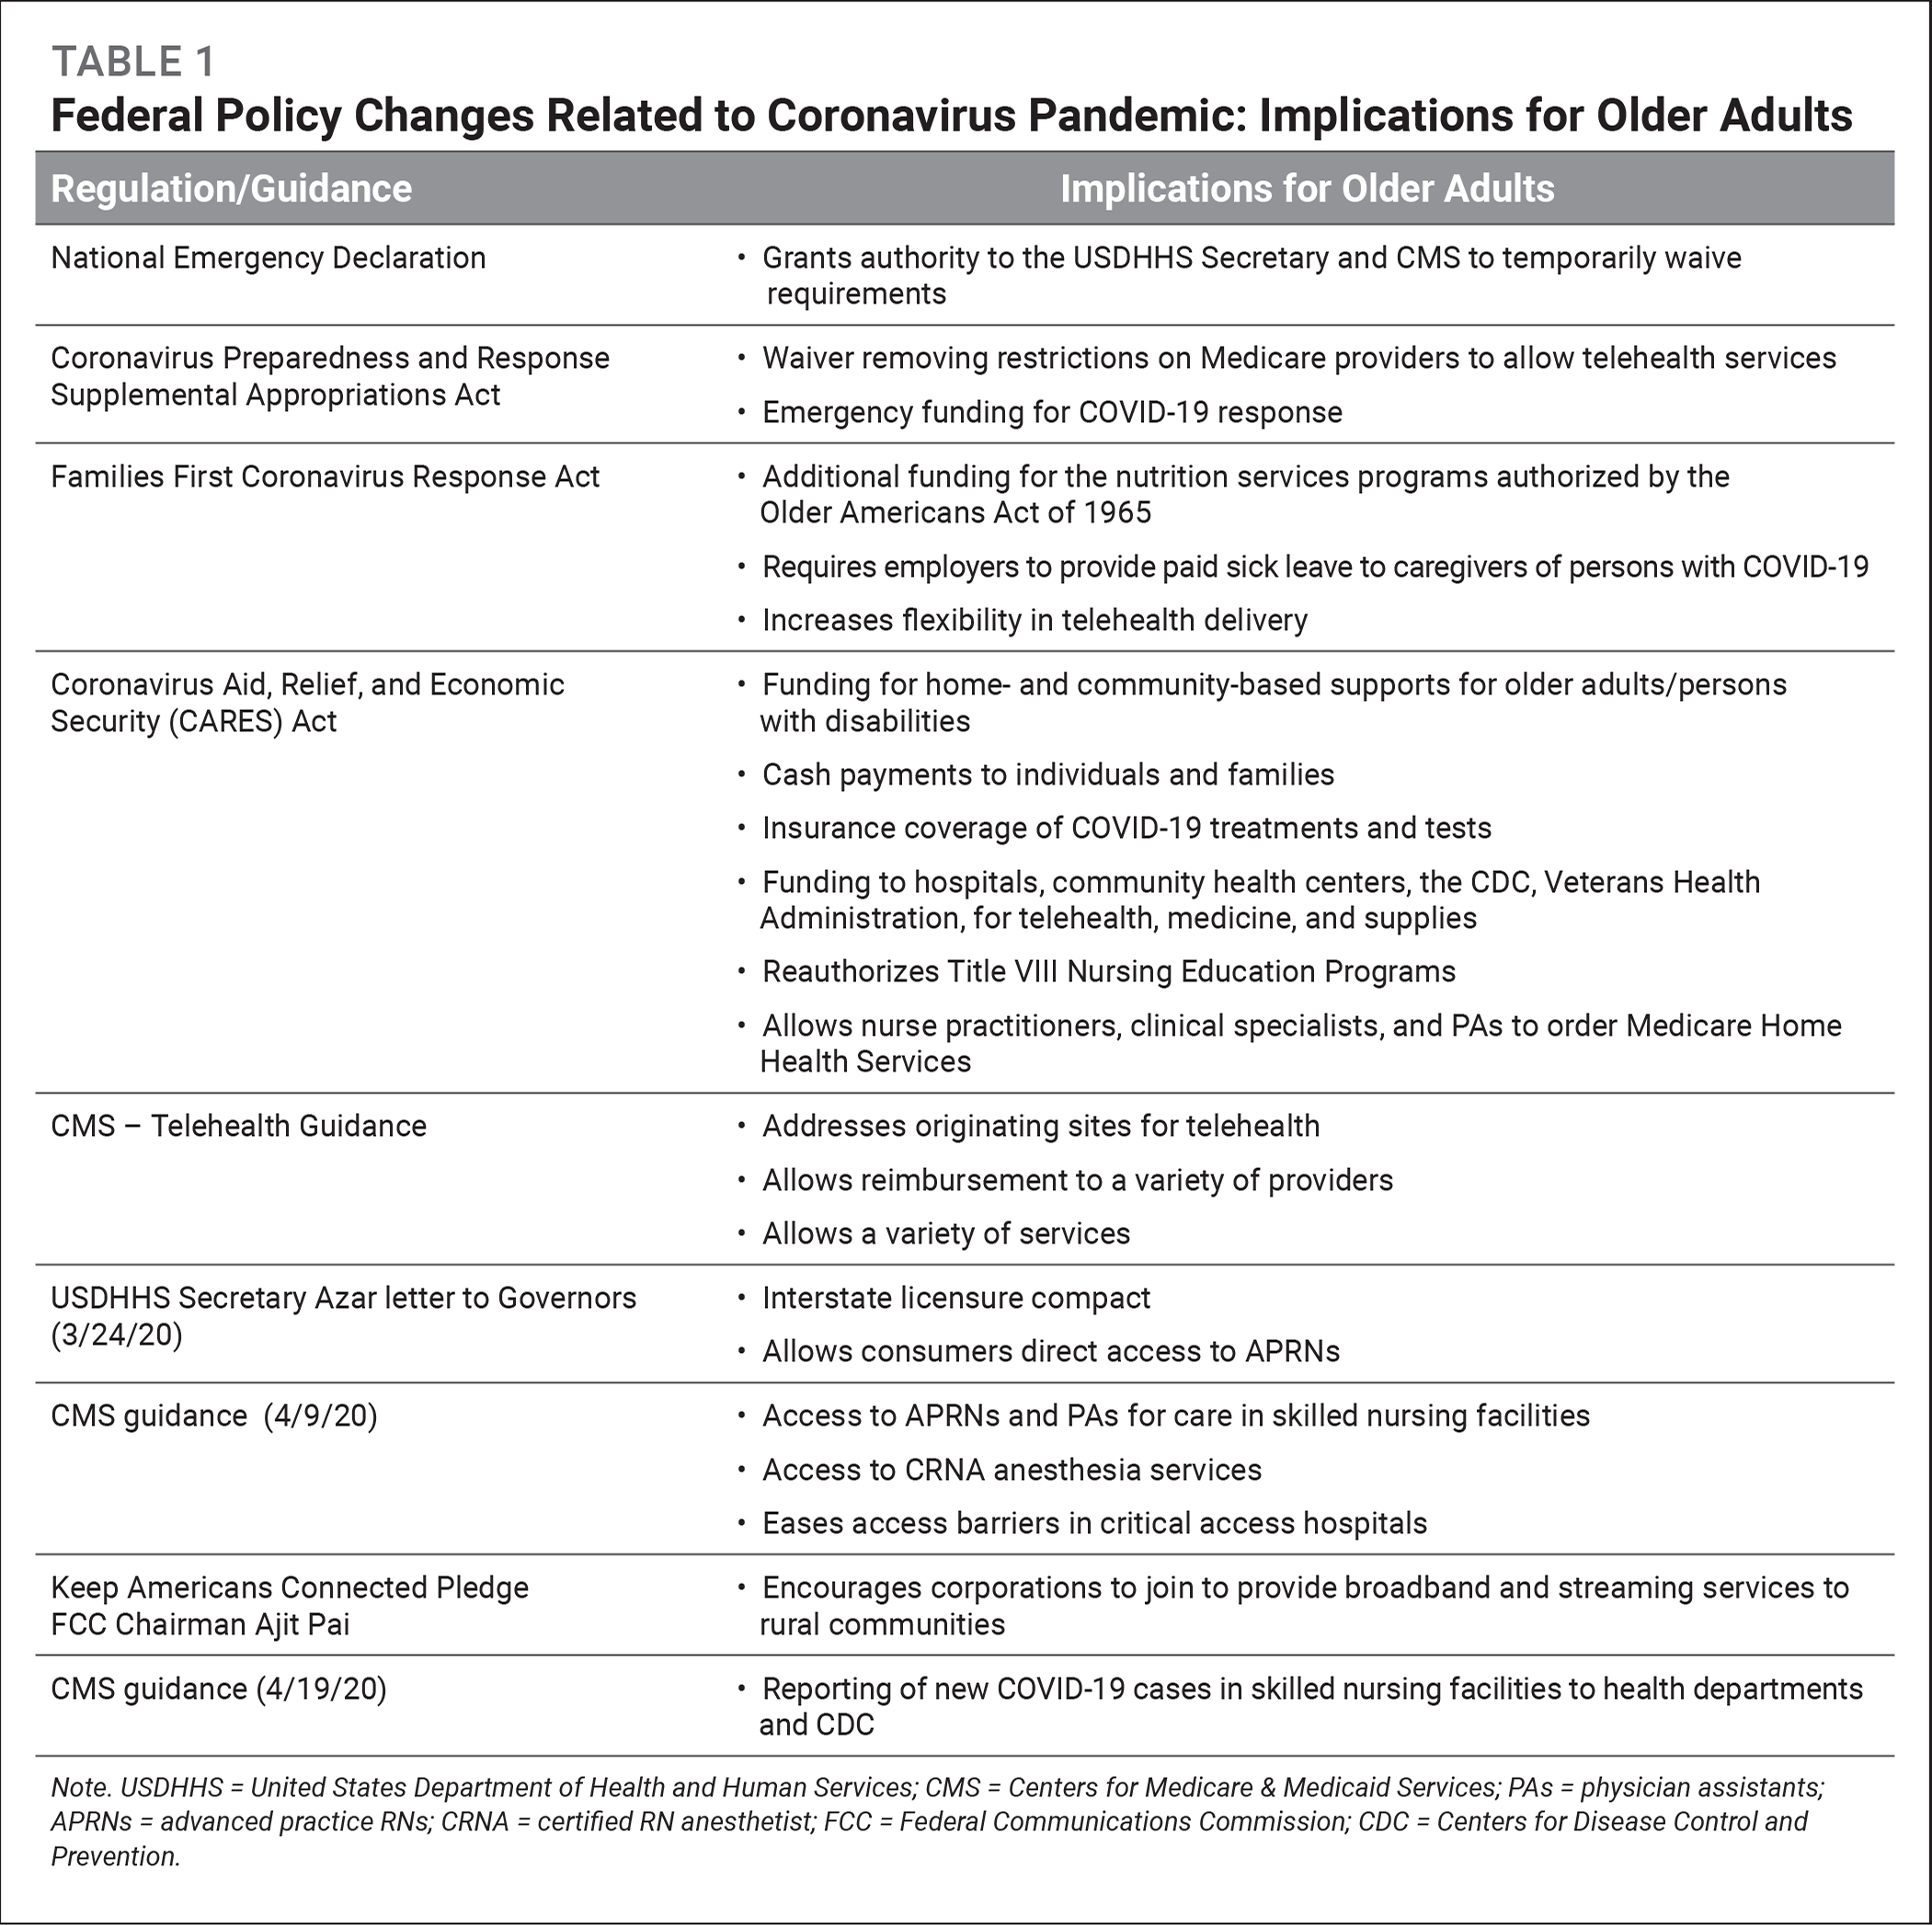 COVID-19 Pandemic Spurs Policy Changes Benefiting Older Adults ...